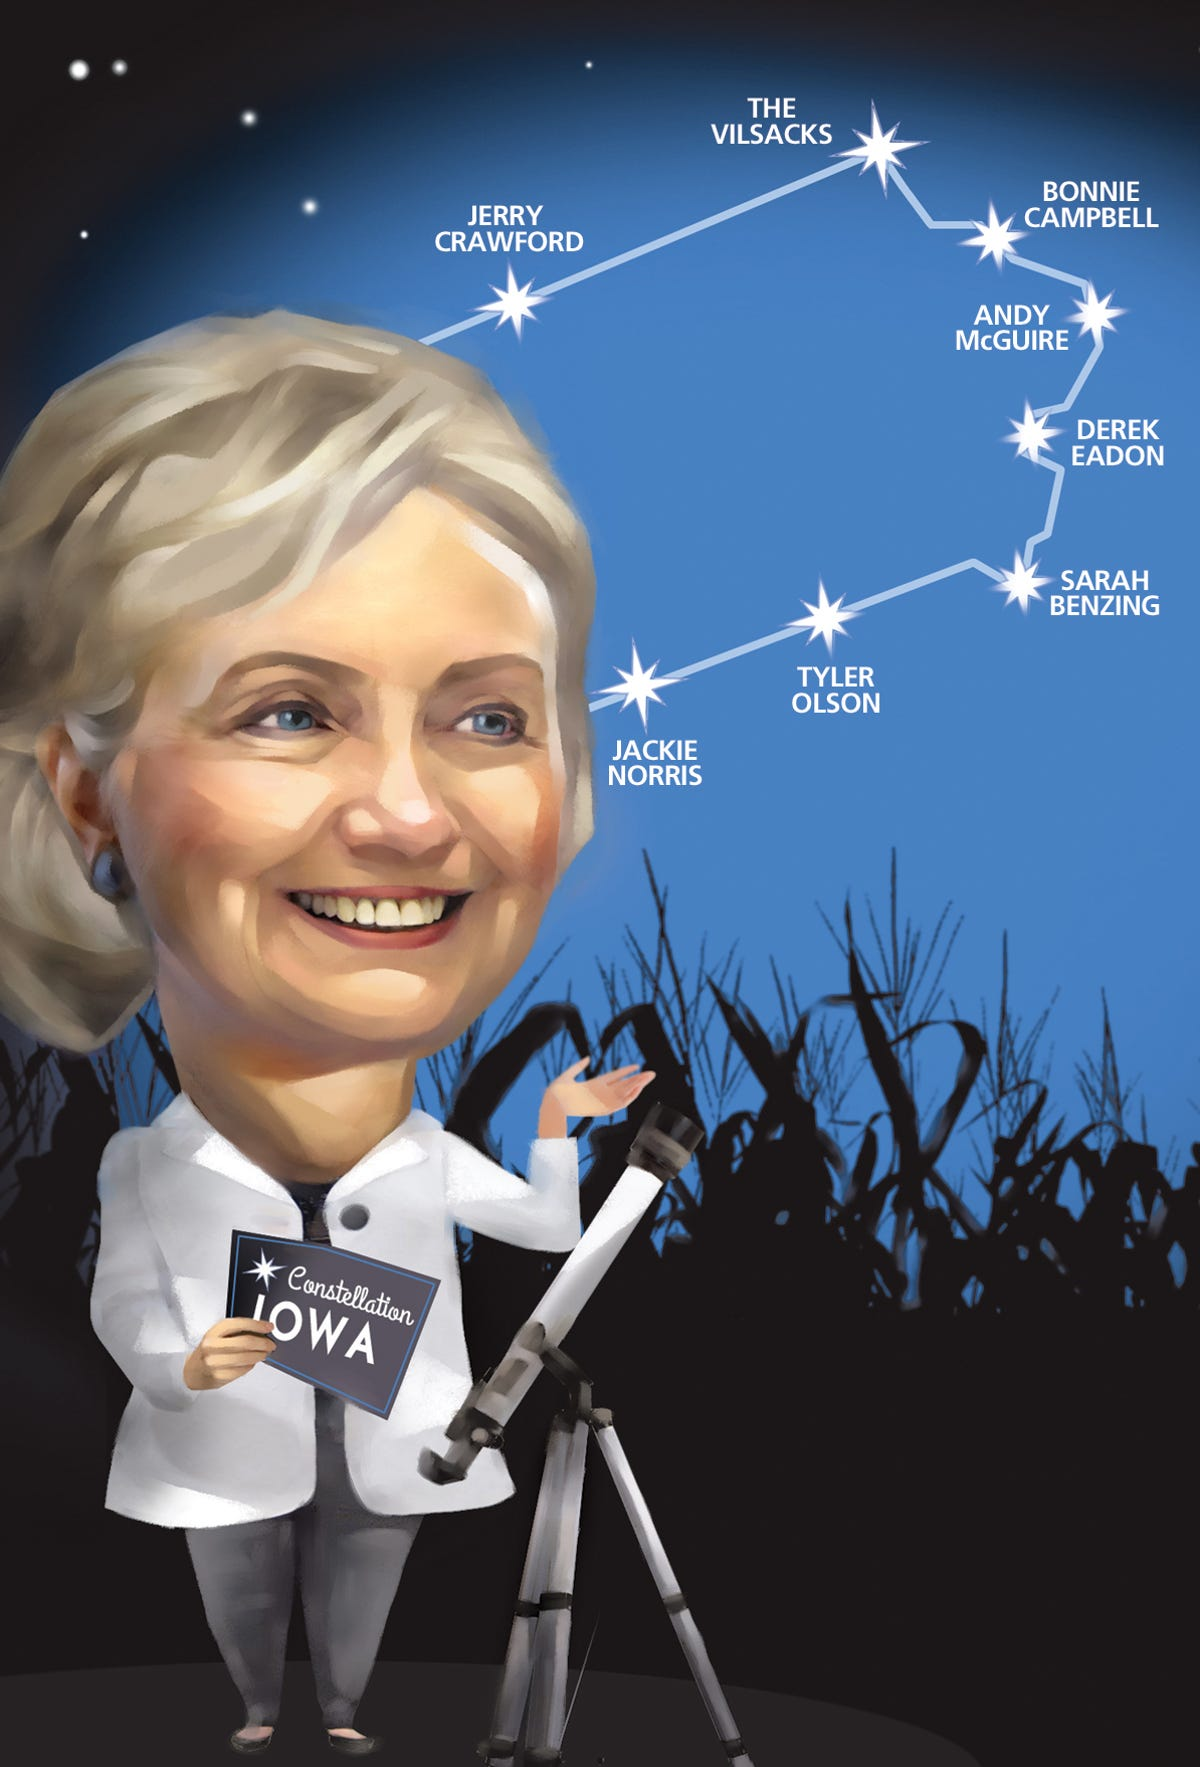 Harkin salute is just a part of Hillary Clinton's visit